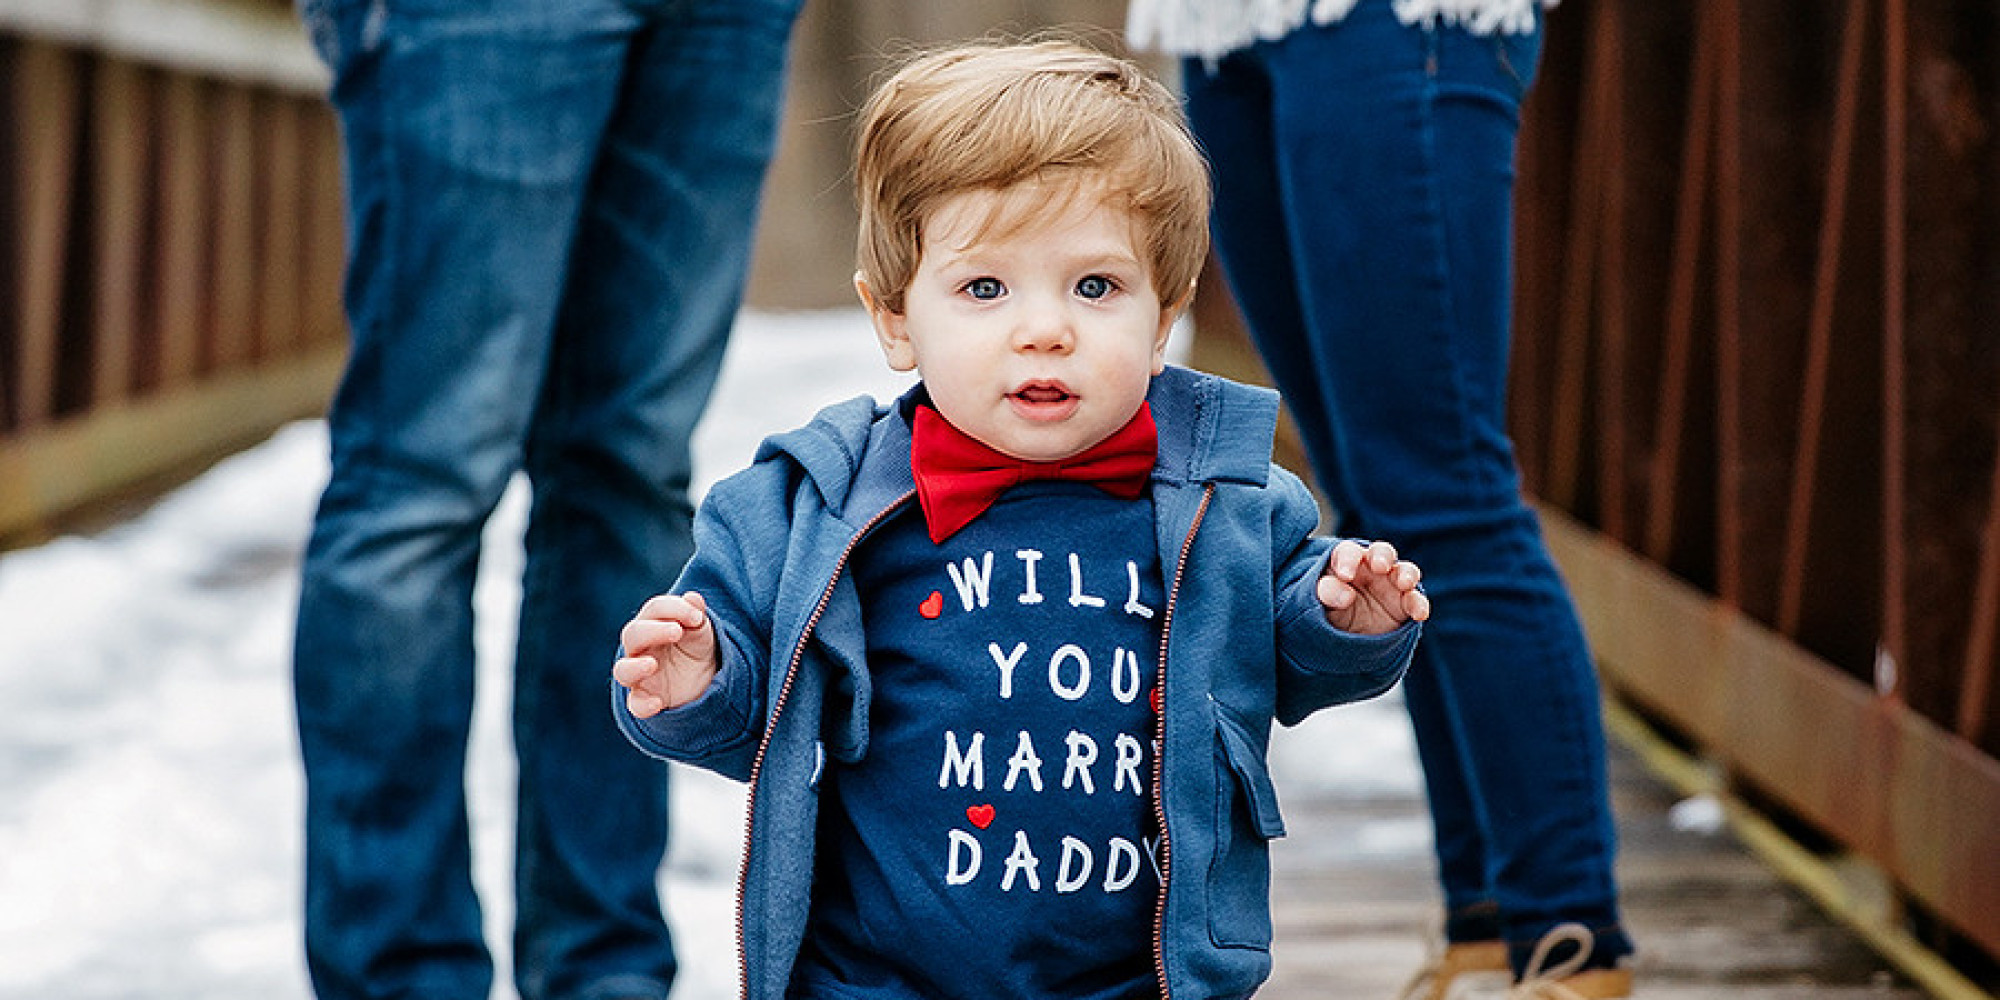 This Precious 1 Year Old Baby Helped His Dad Propose To His Mom Huffpost